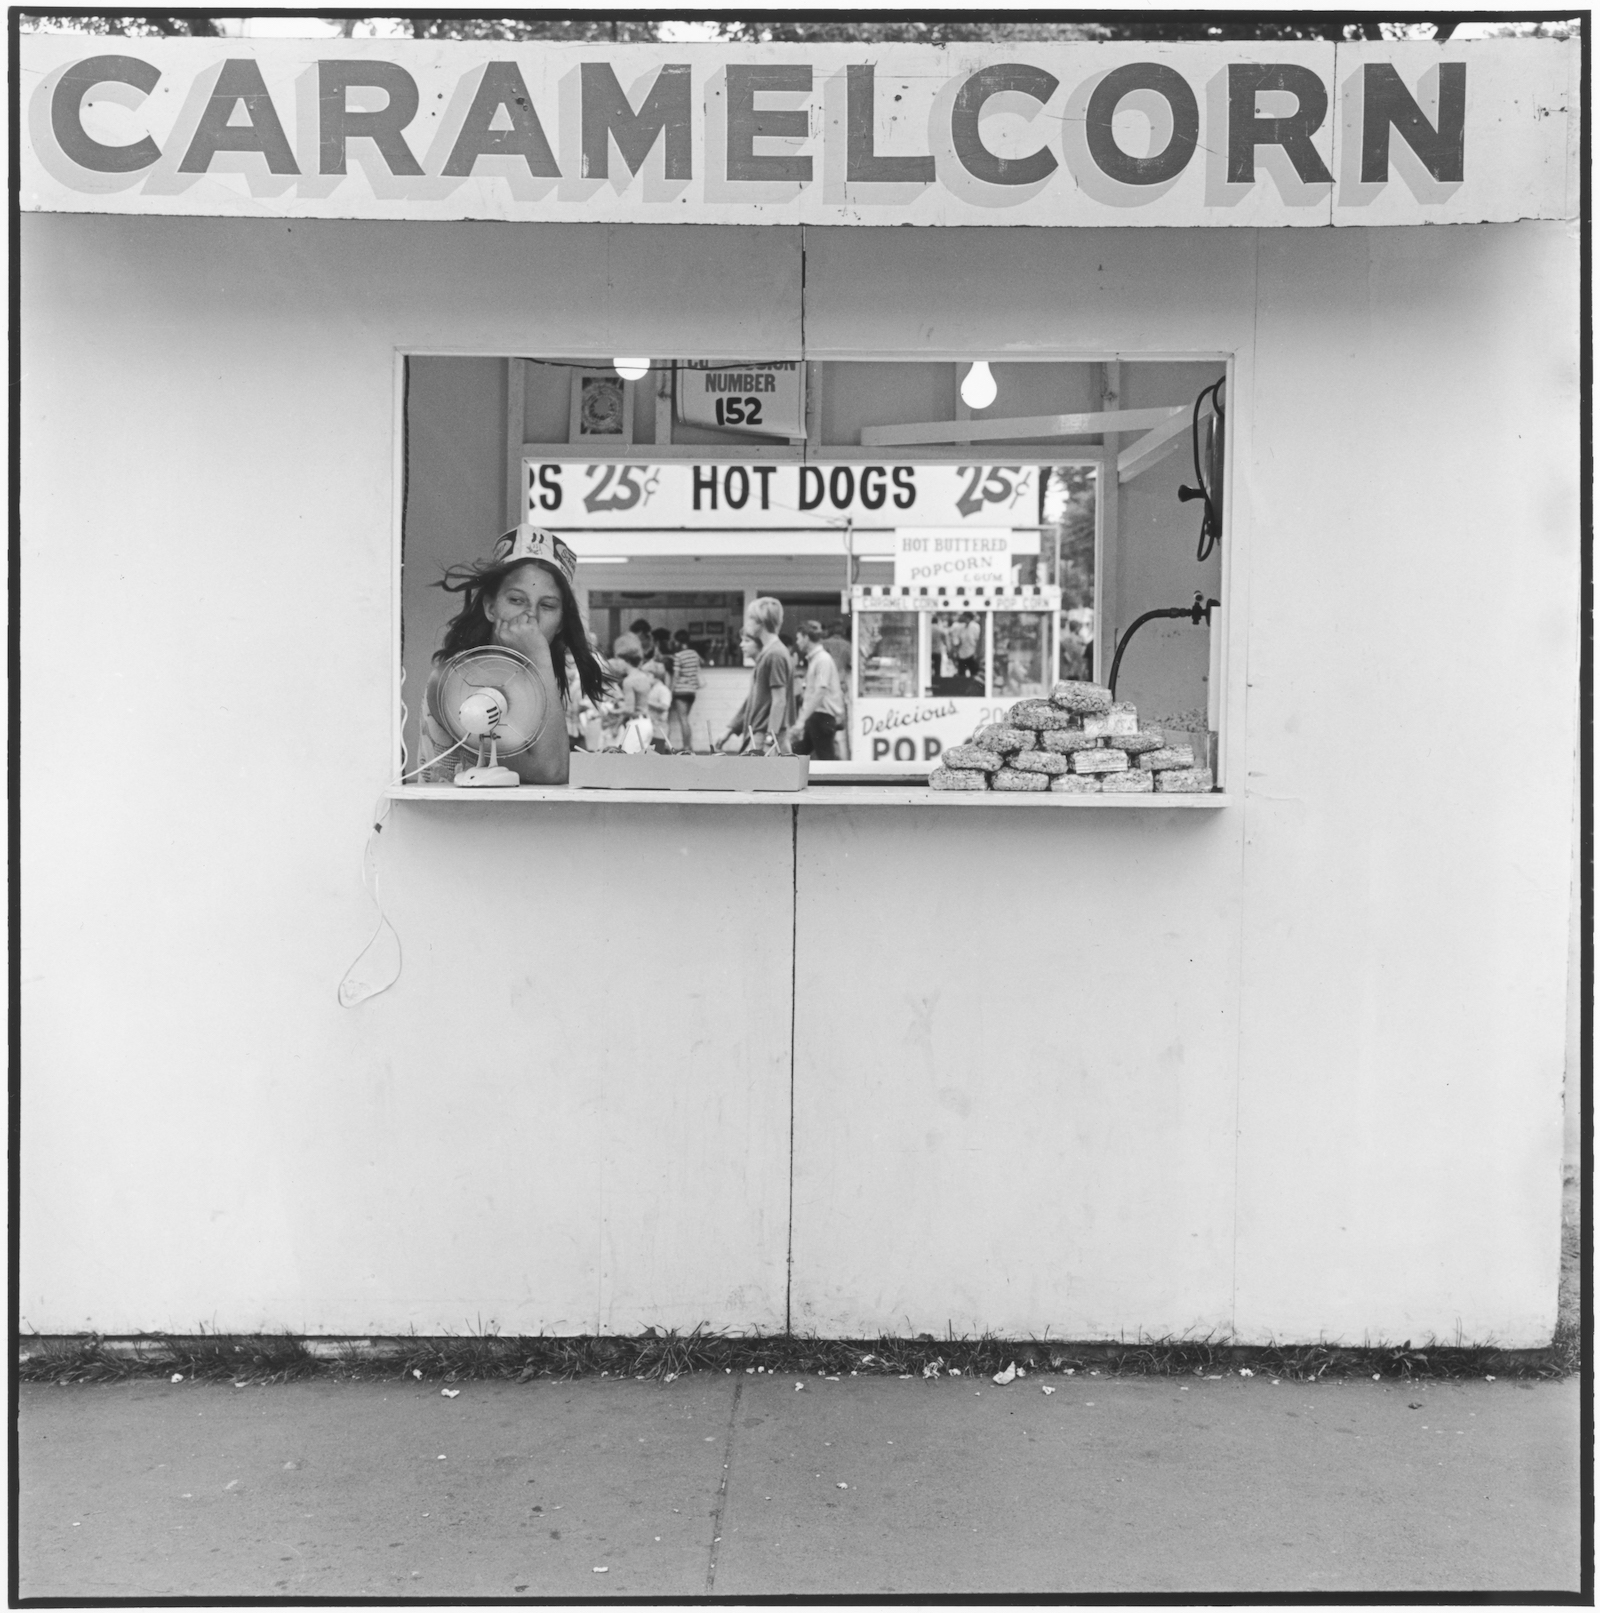 Caramel Corn, Minnesota State Fair, St. Paul, Minnesota, 1973